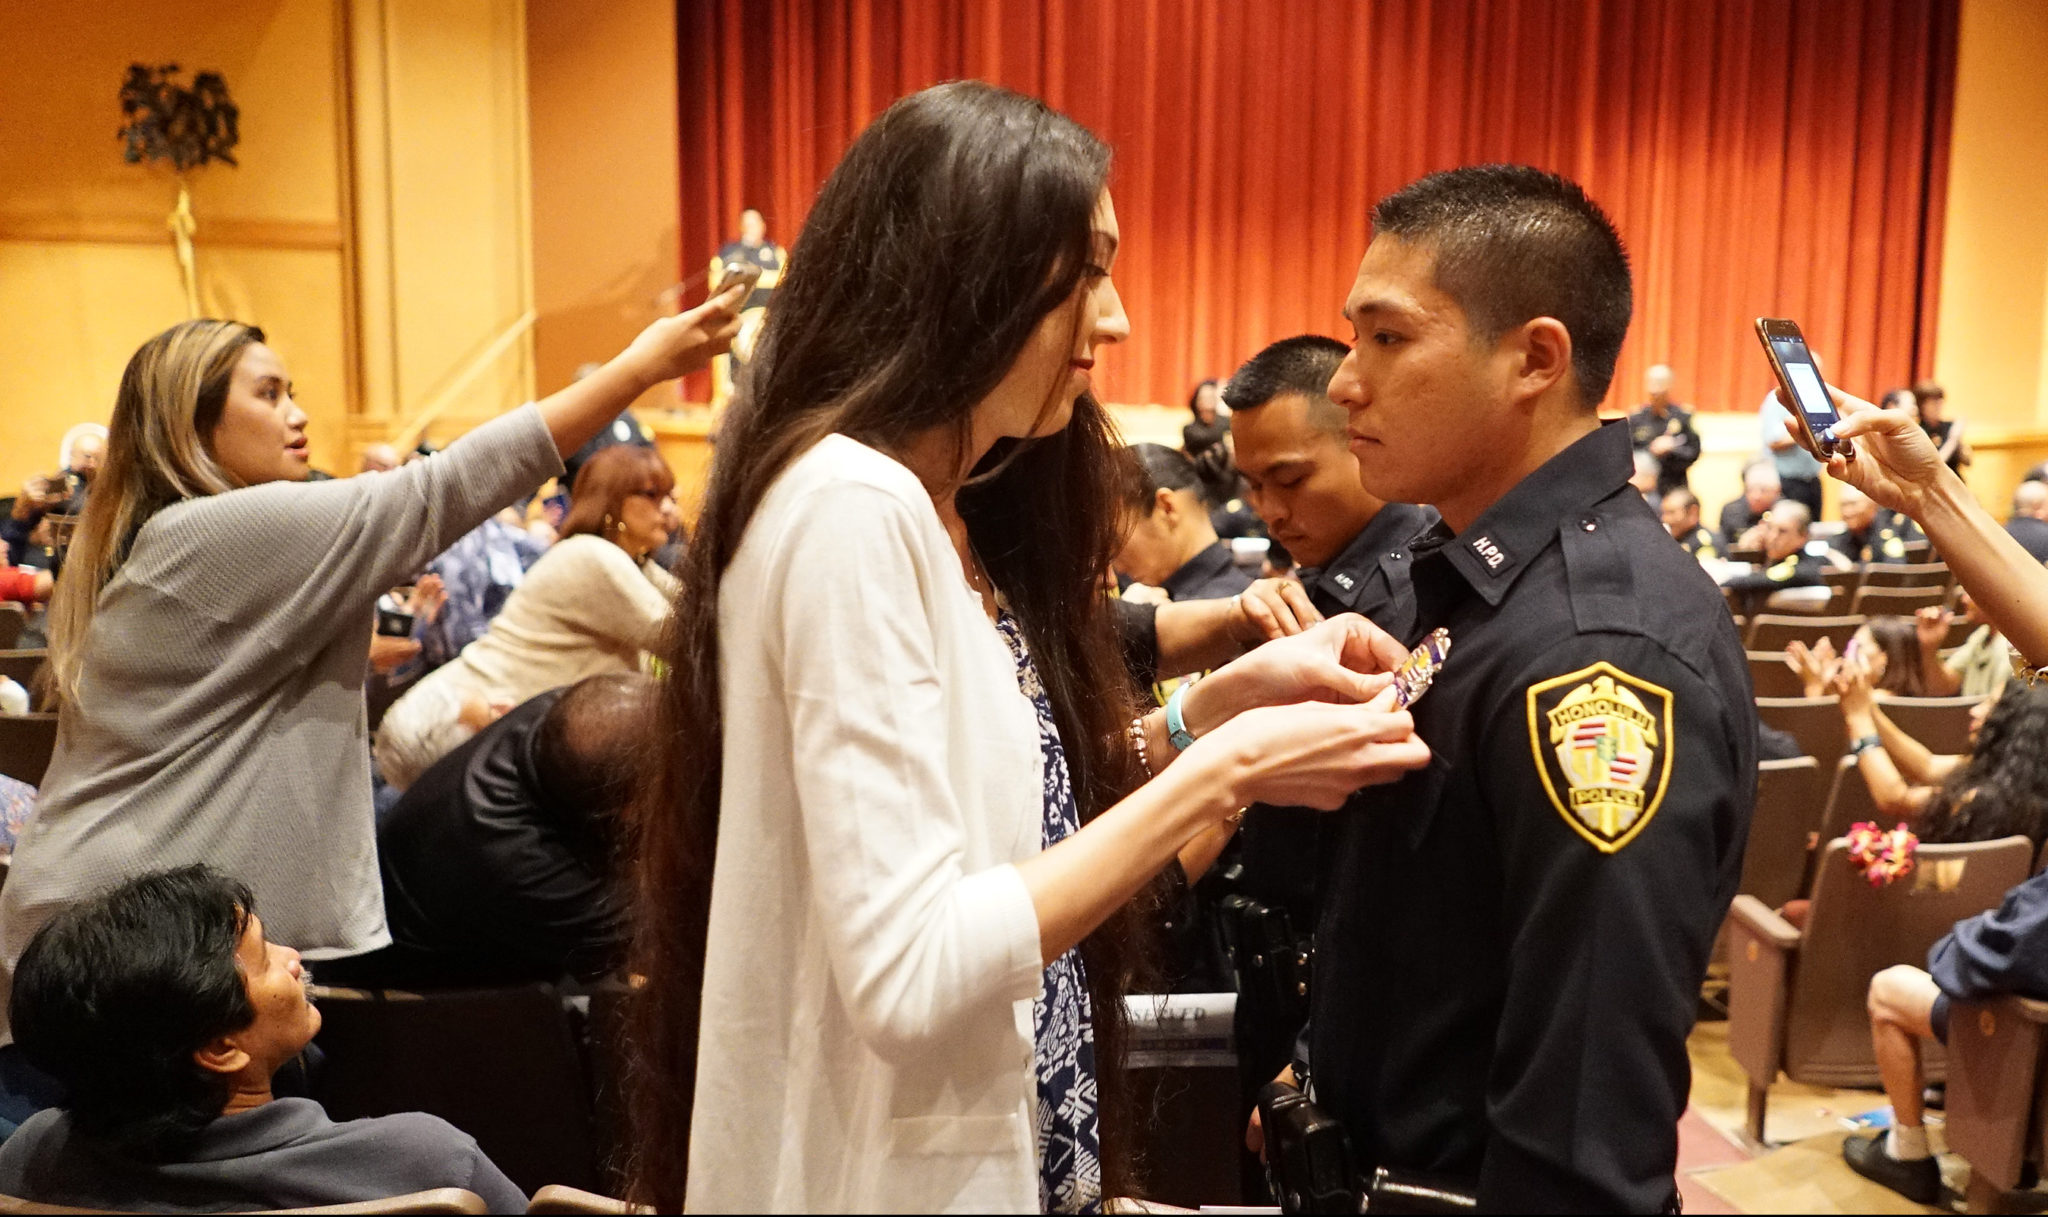 <p>Jason Yee Hoy, right, was among 17 recruits who got their badges just before the graduation ceremony Wednesday night at McKinley High School. They will now partner up with veteran officers to gain field experience.</p>